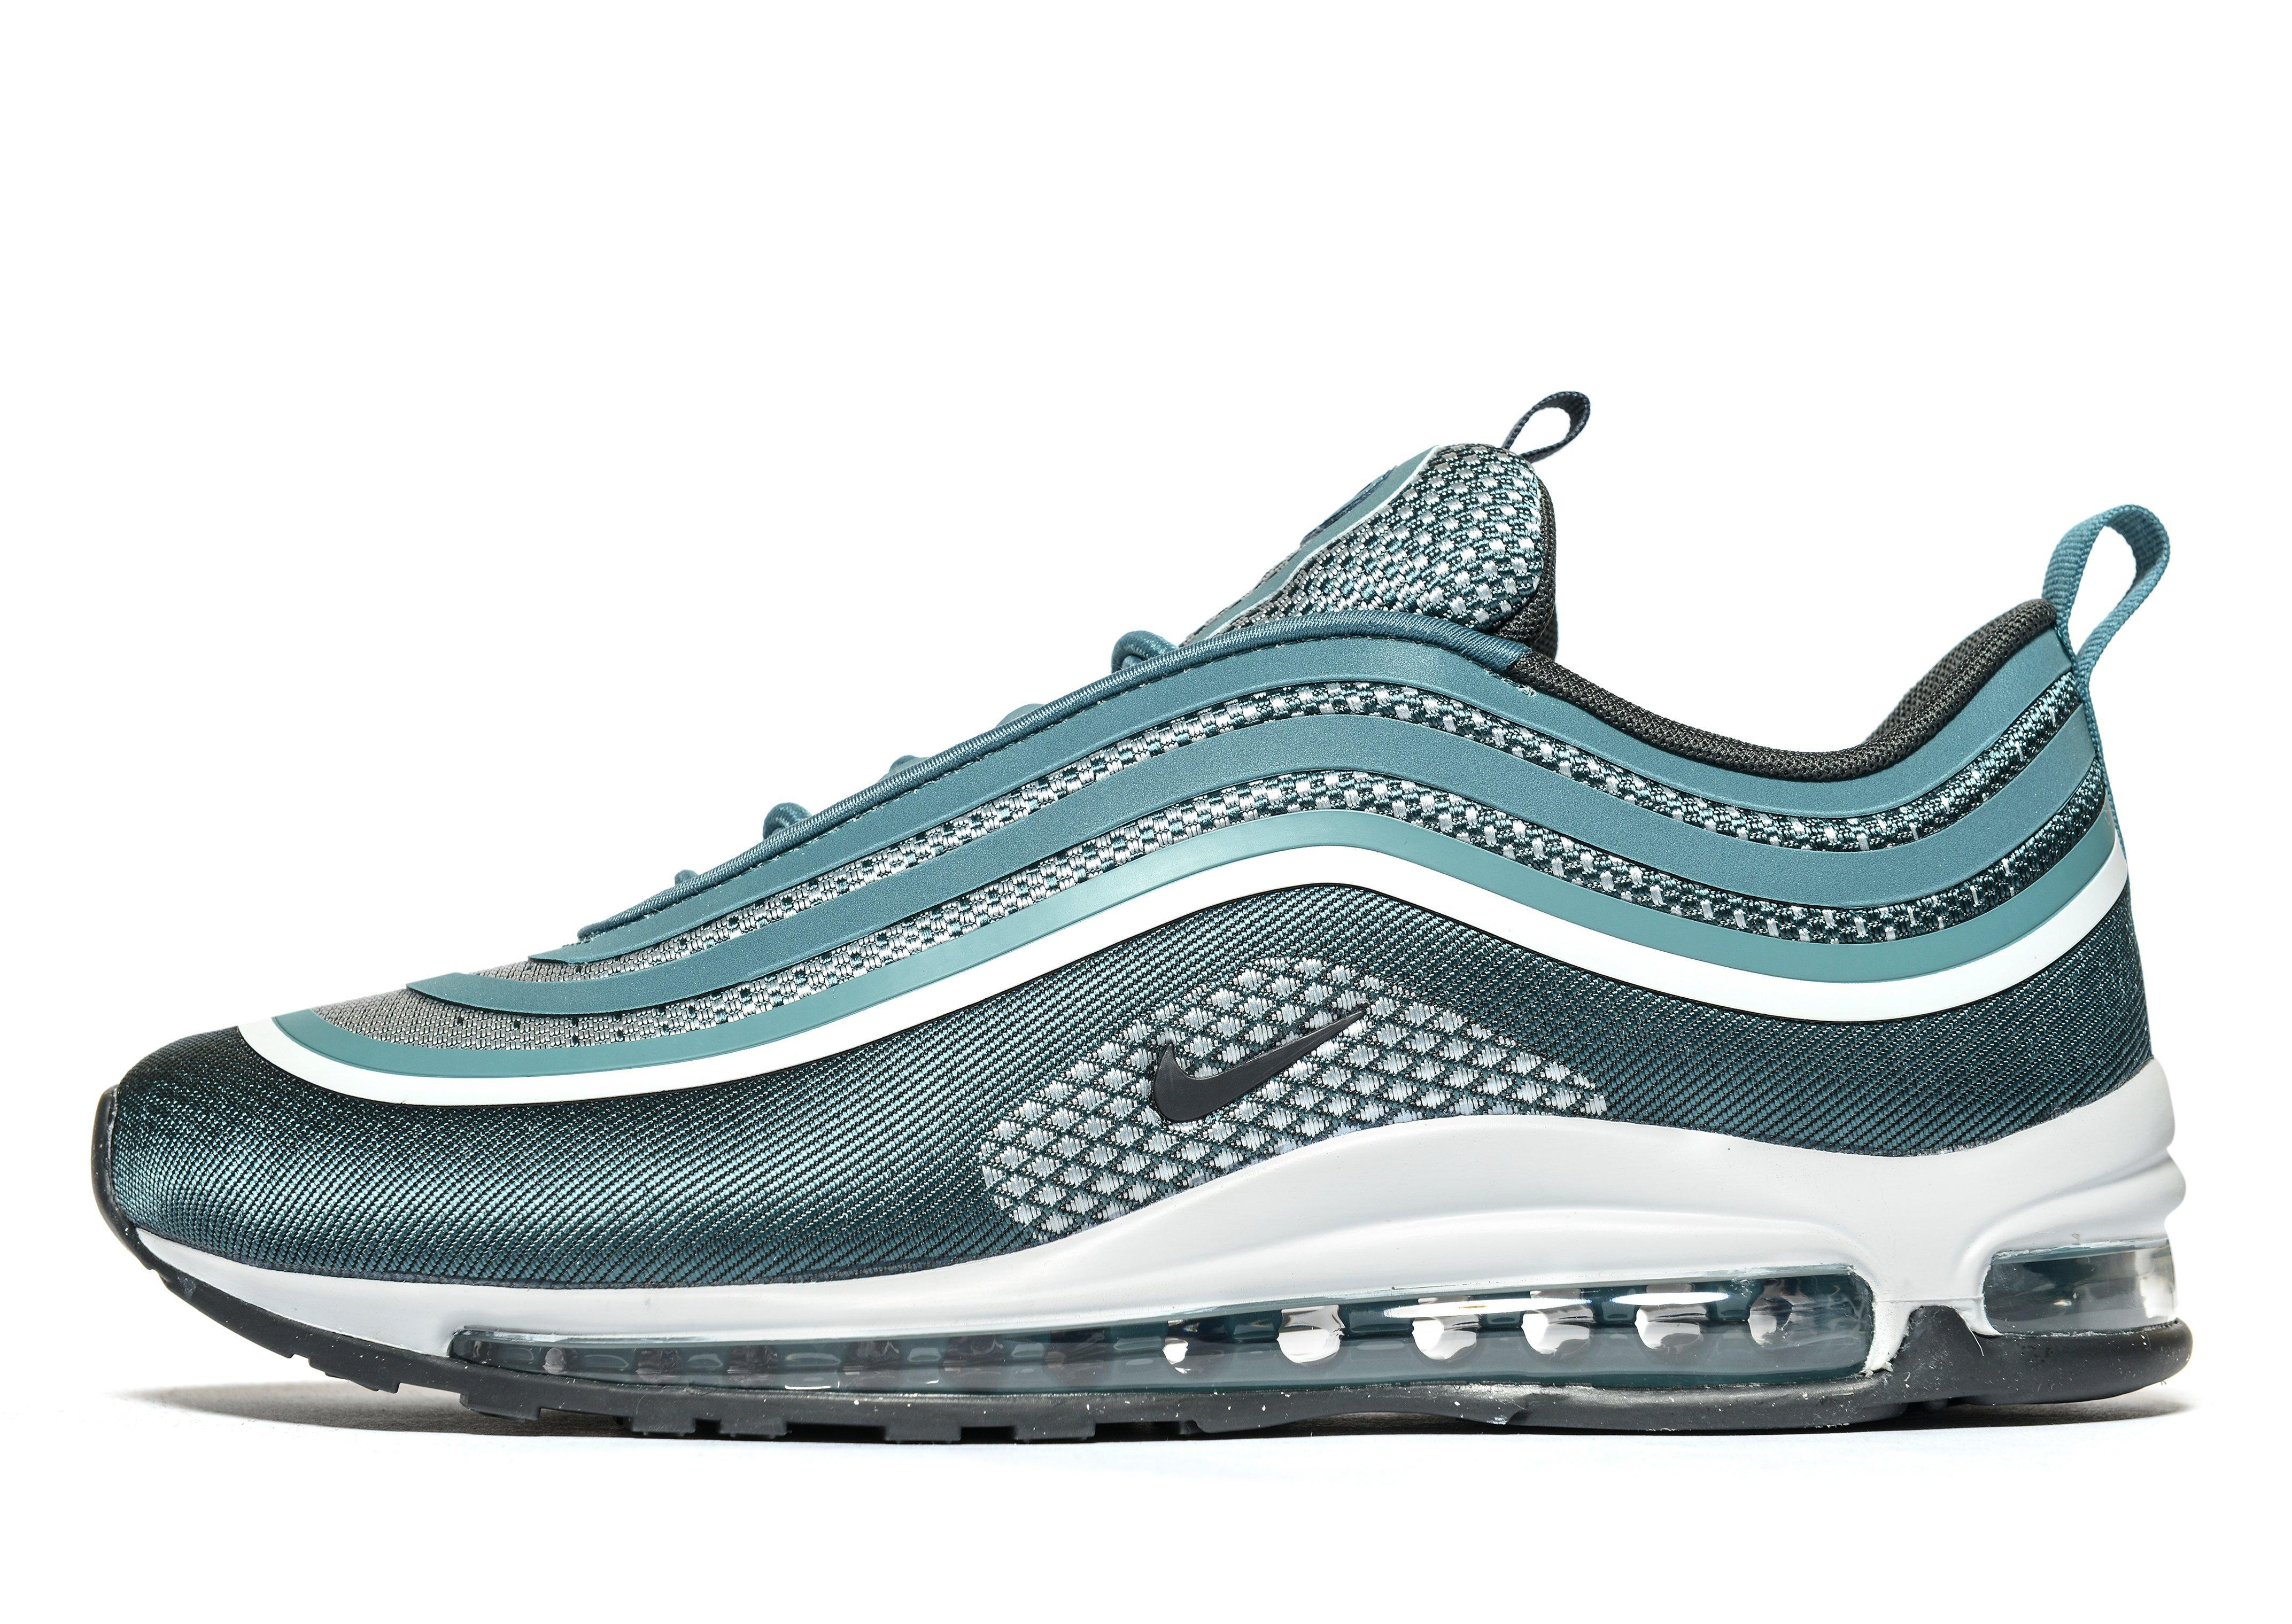 lyst nike air max 97 ultra in blue for men. Black Bedroom Furniture Sets. Home Design Ideas